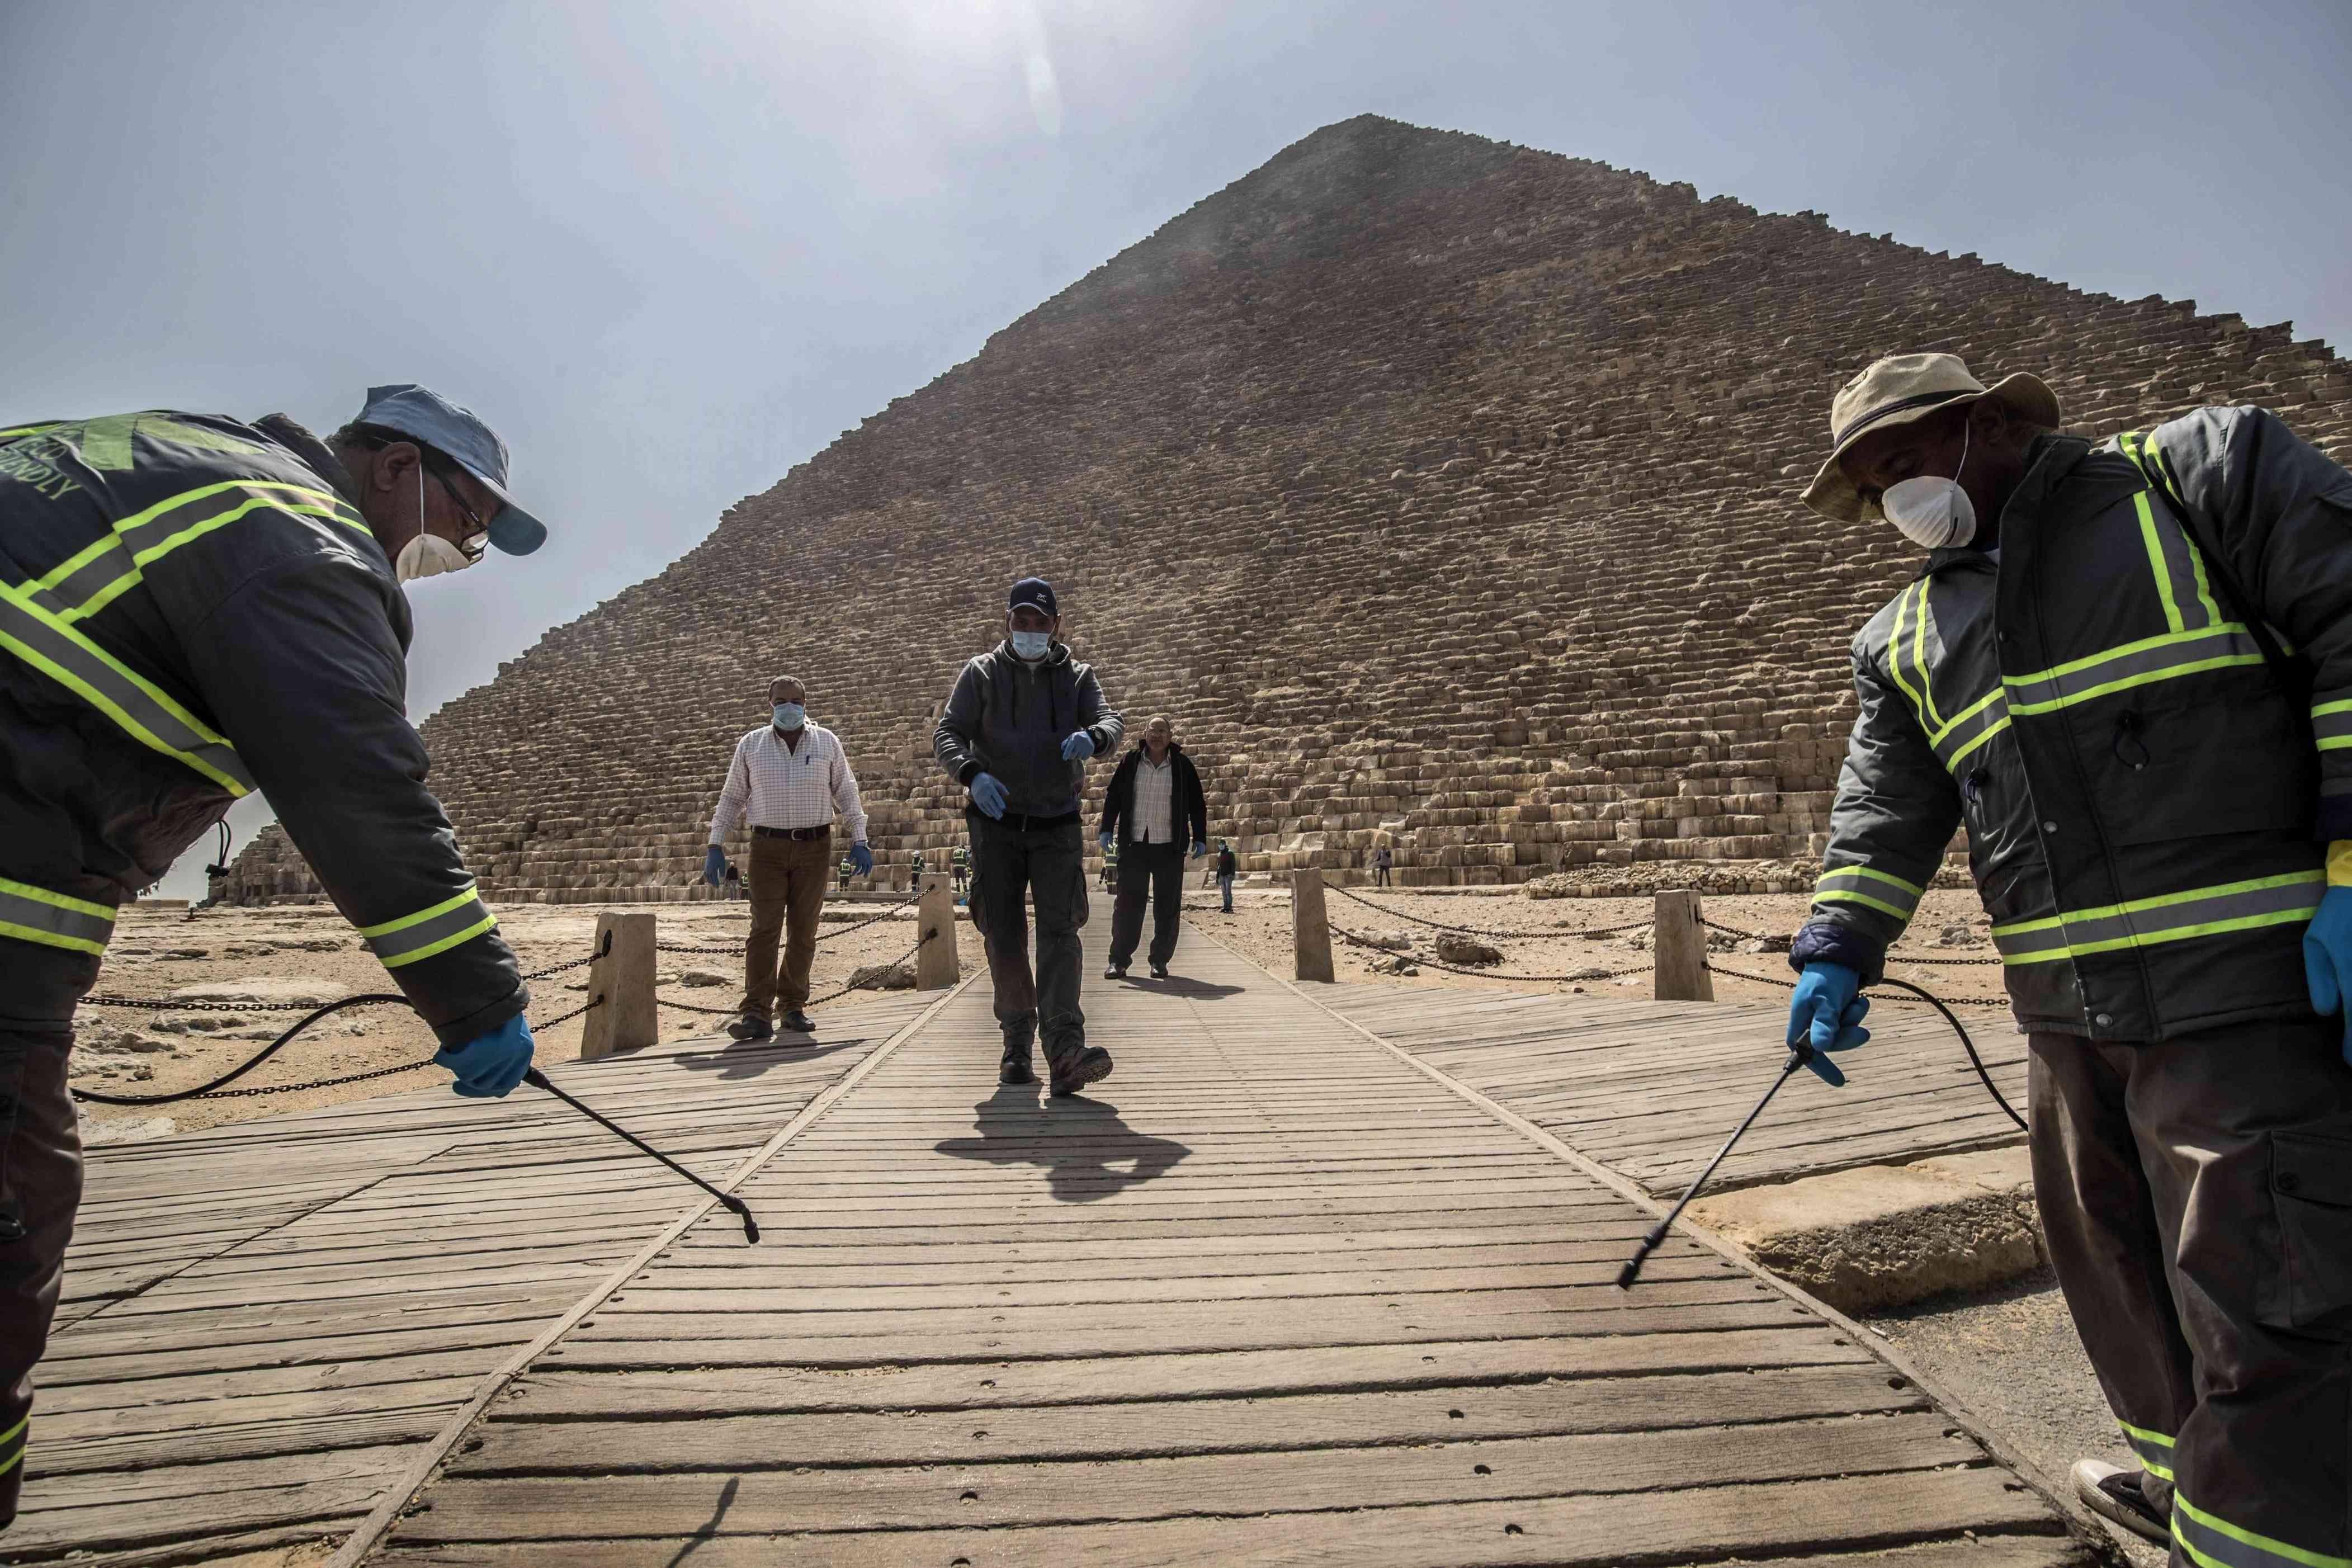 Slide 3 of 40: Egyptian municipality workers disinfect the Giza pyramids necropolis on the southwestern outskirts of the Egyptian capital Cairo on March 25, 2020 as protective a measure against the spread of the coronavirus COVID-19.